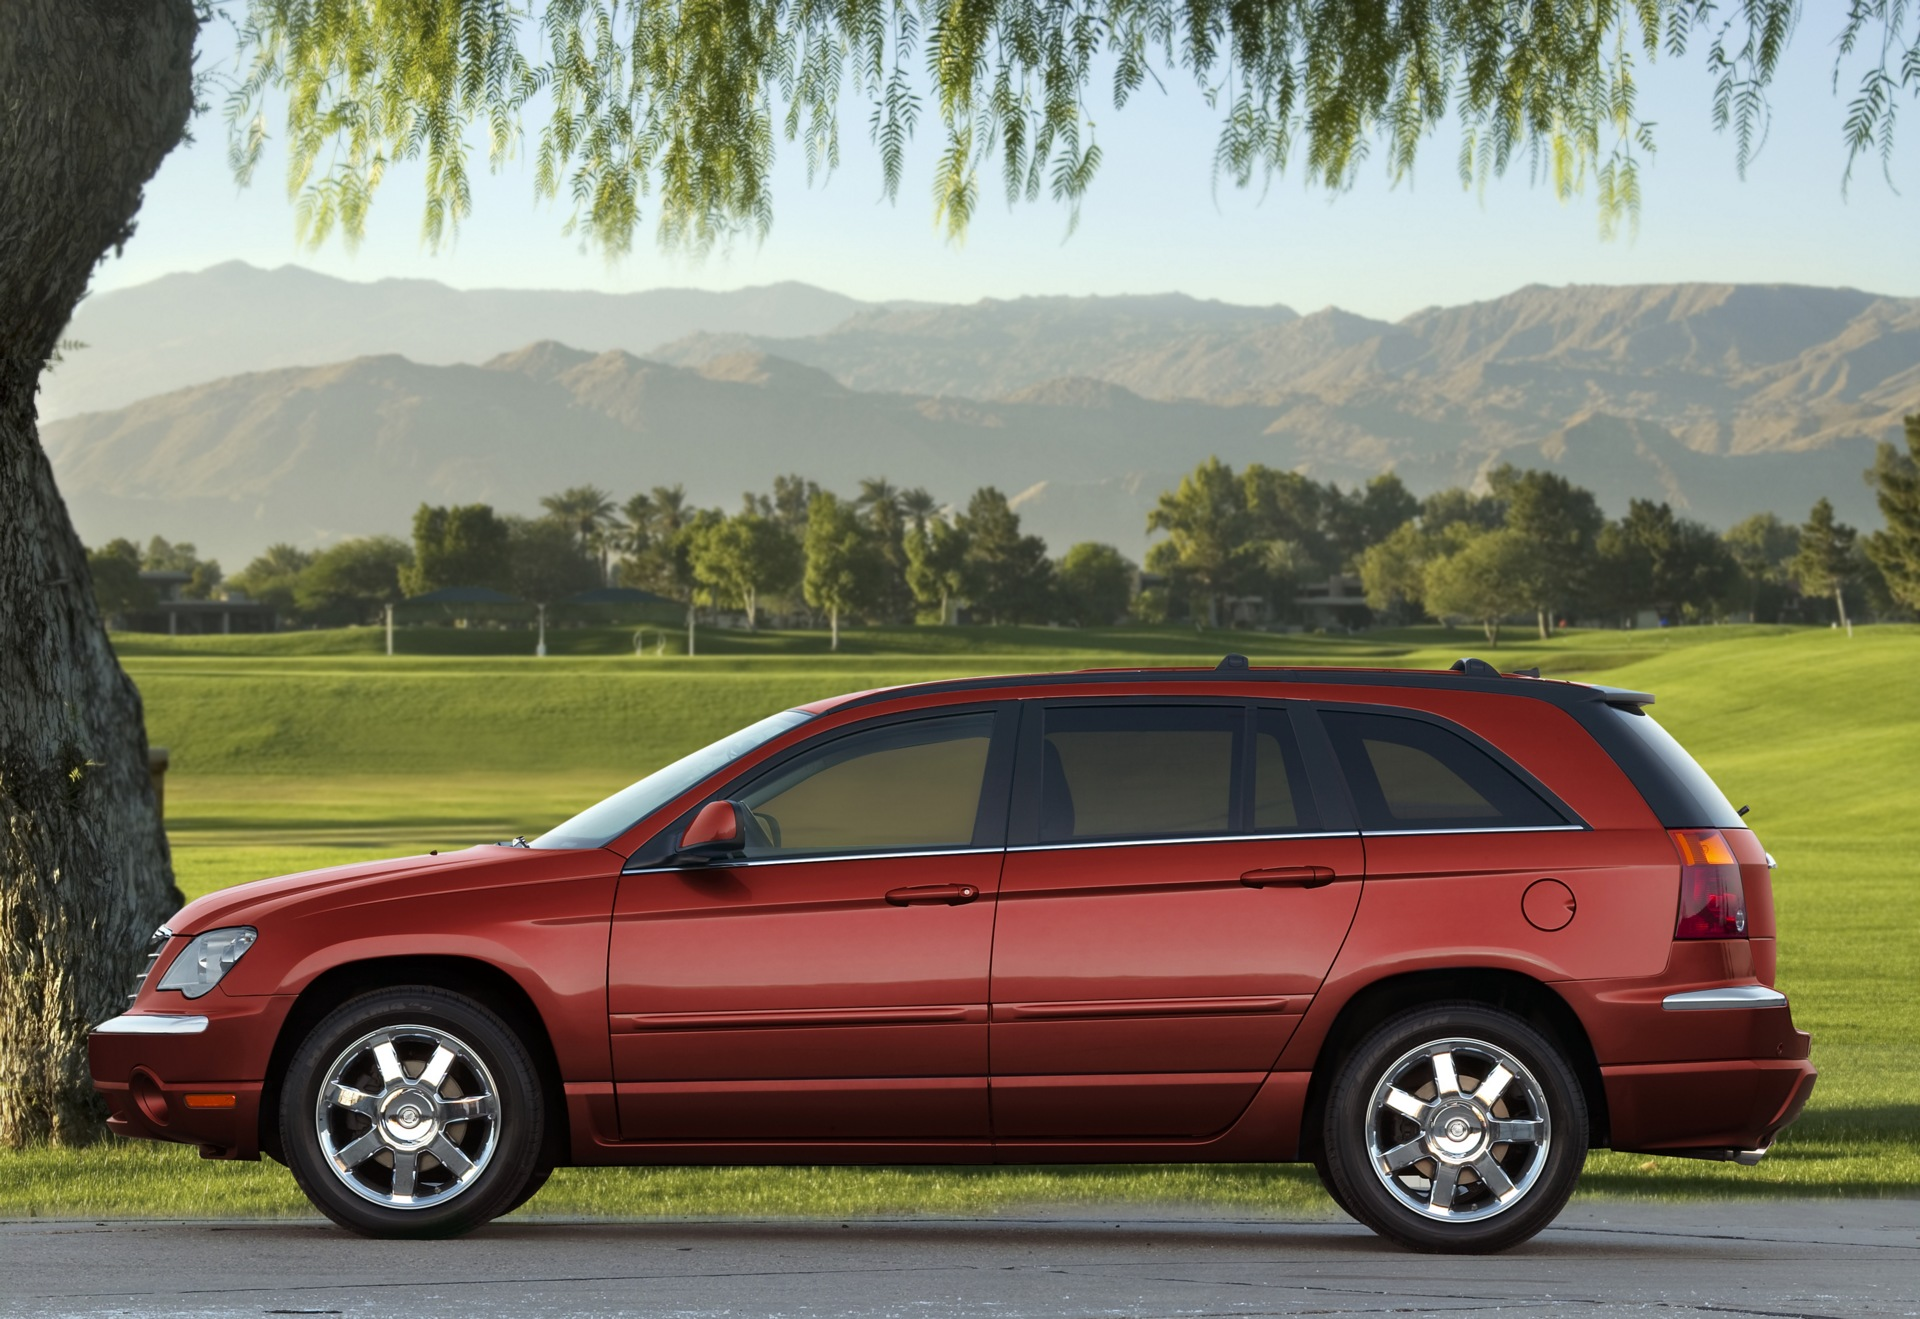 Lamborghini Suv Price >> 2008 Chrysler Pacifica News and Information